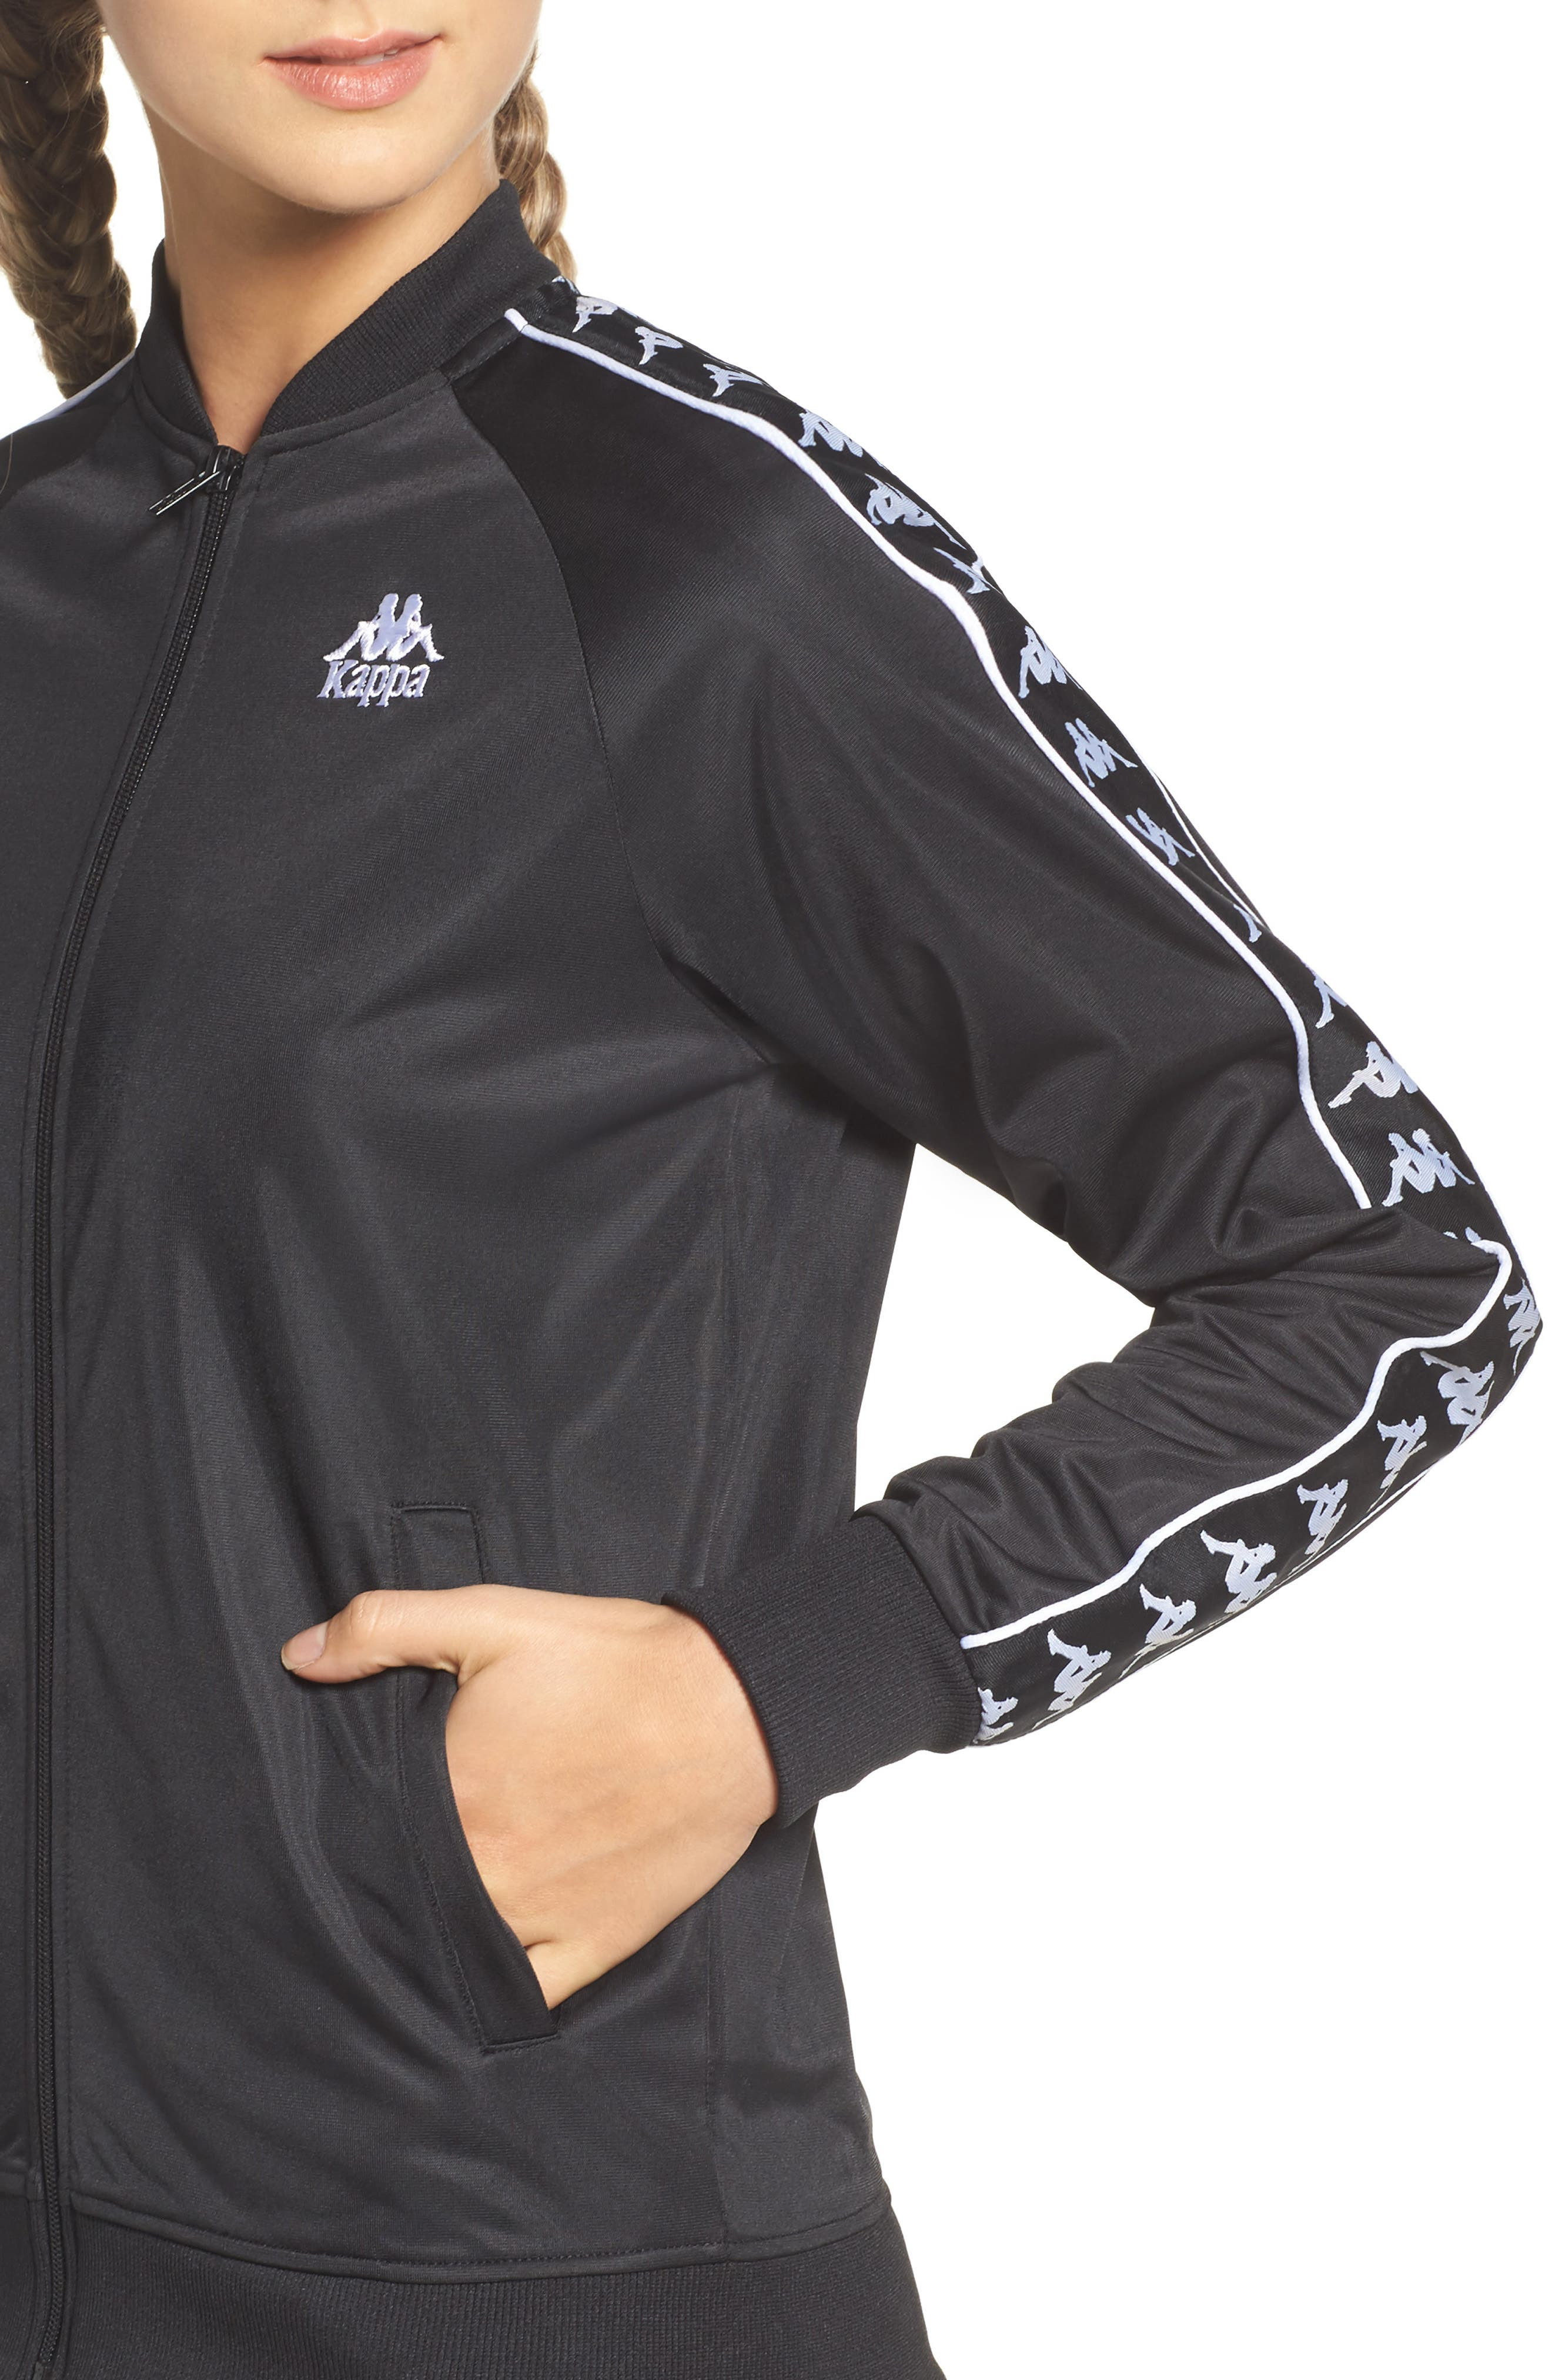 Authentic Morecambe Track Jacket,                             Alternate thumbnail 4, color,                             001